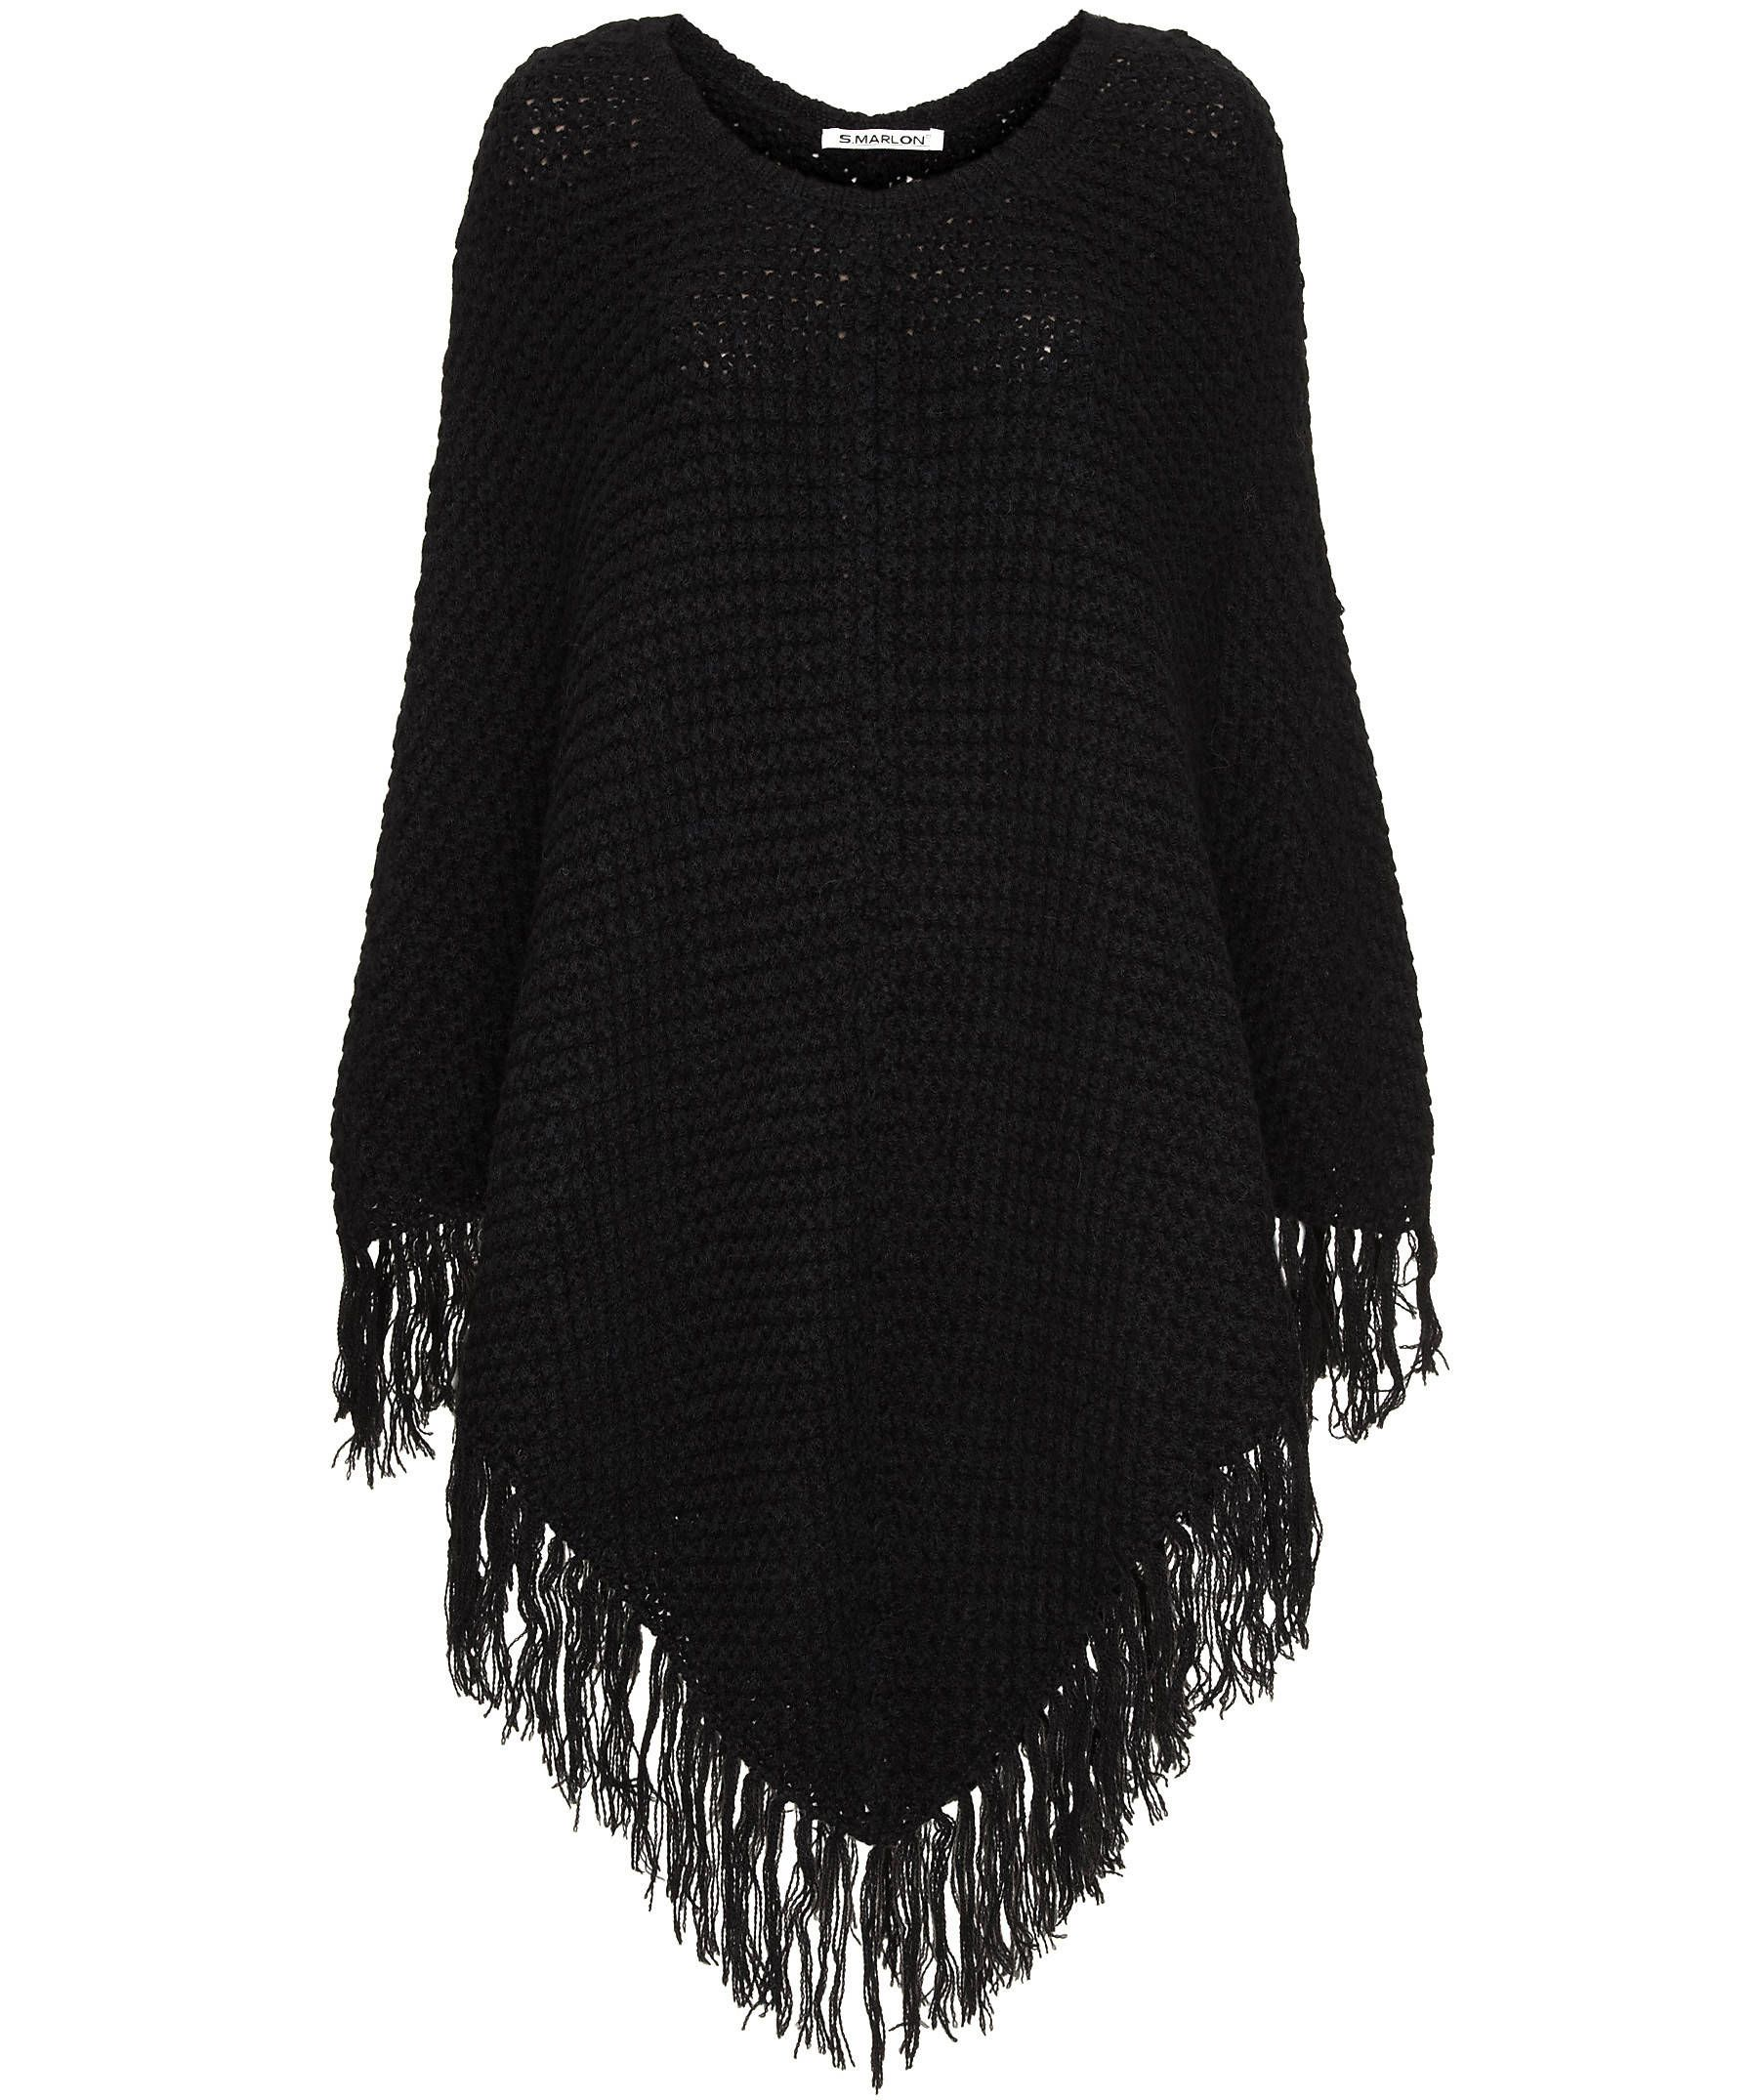 Süßer Damen Poncho #fashion #engelhorn #fall #trends